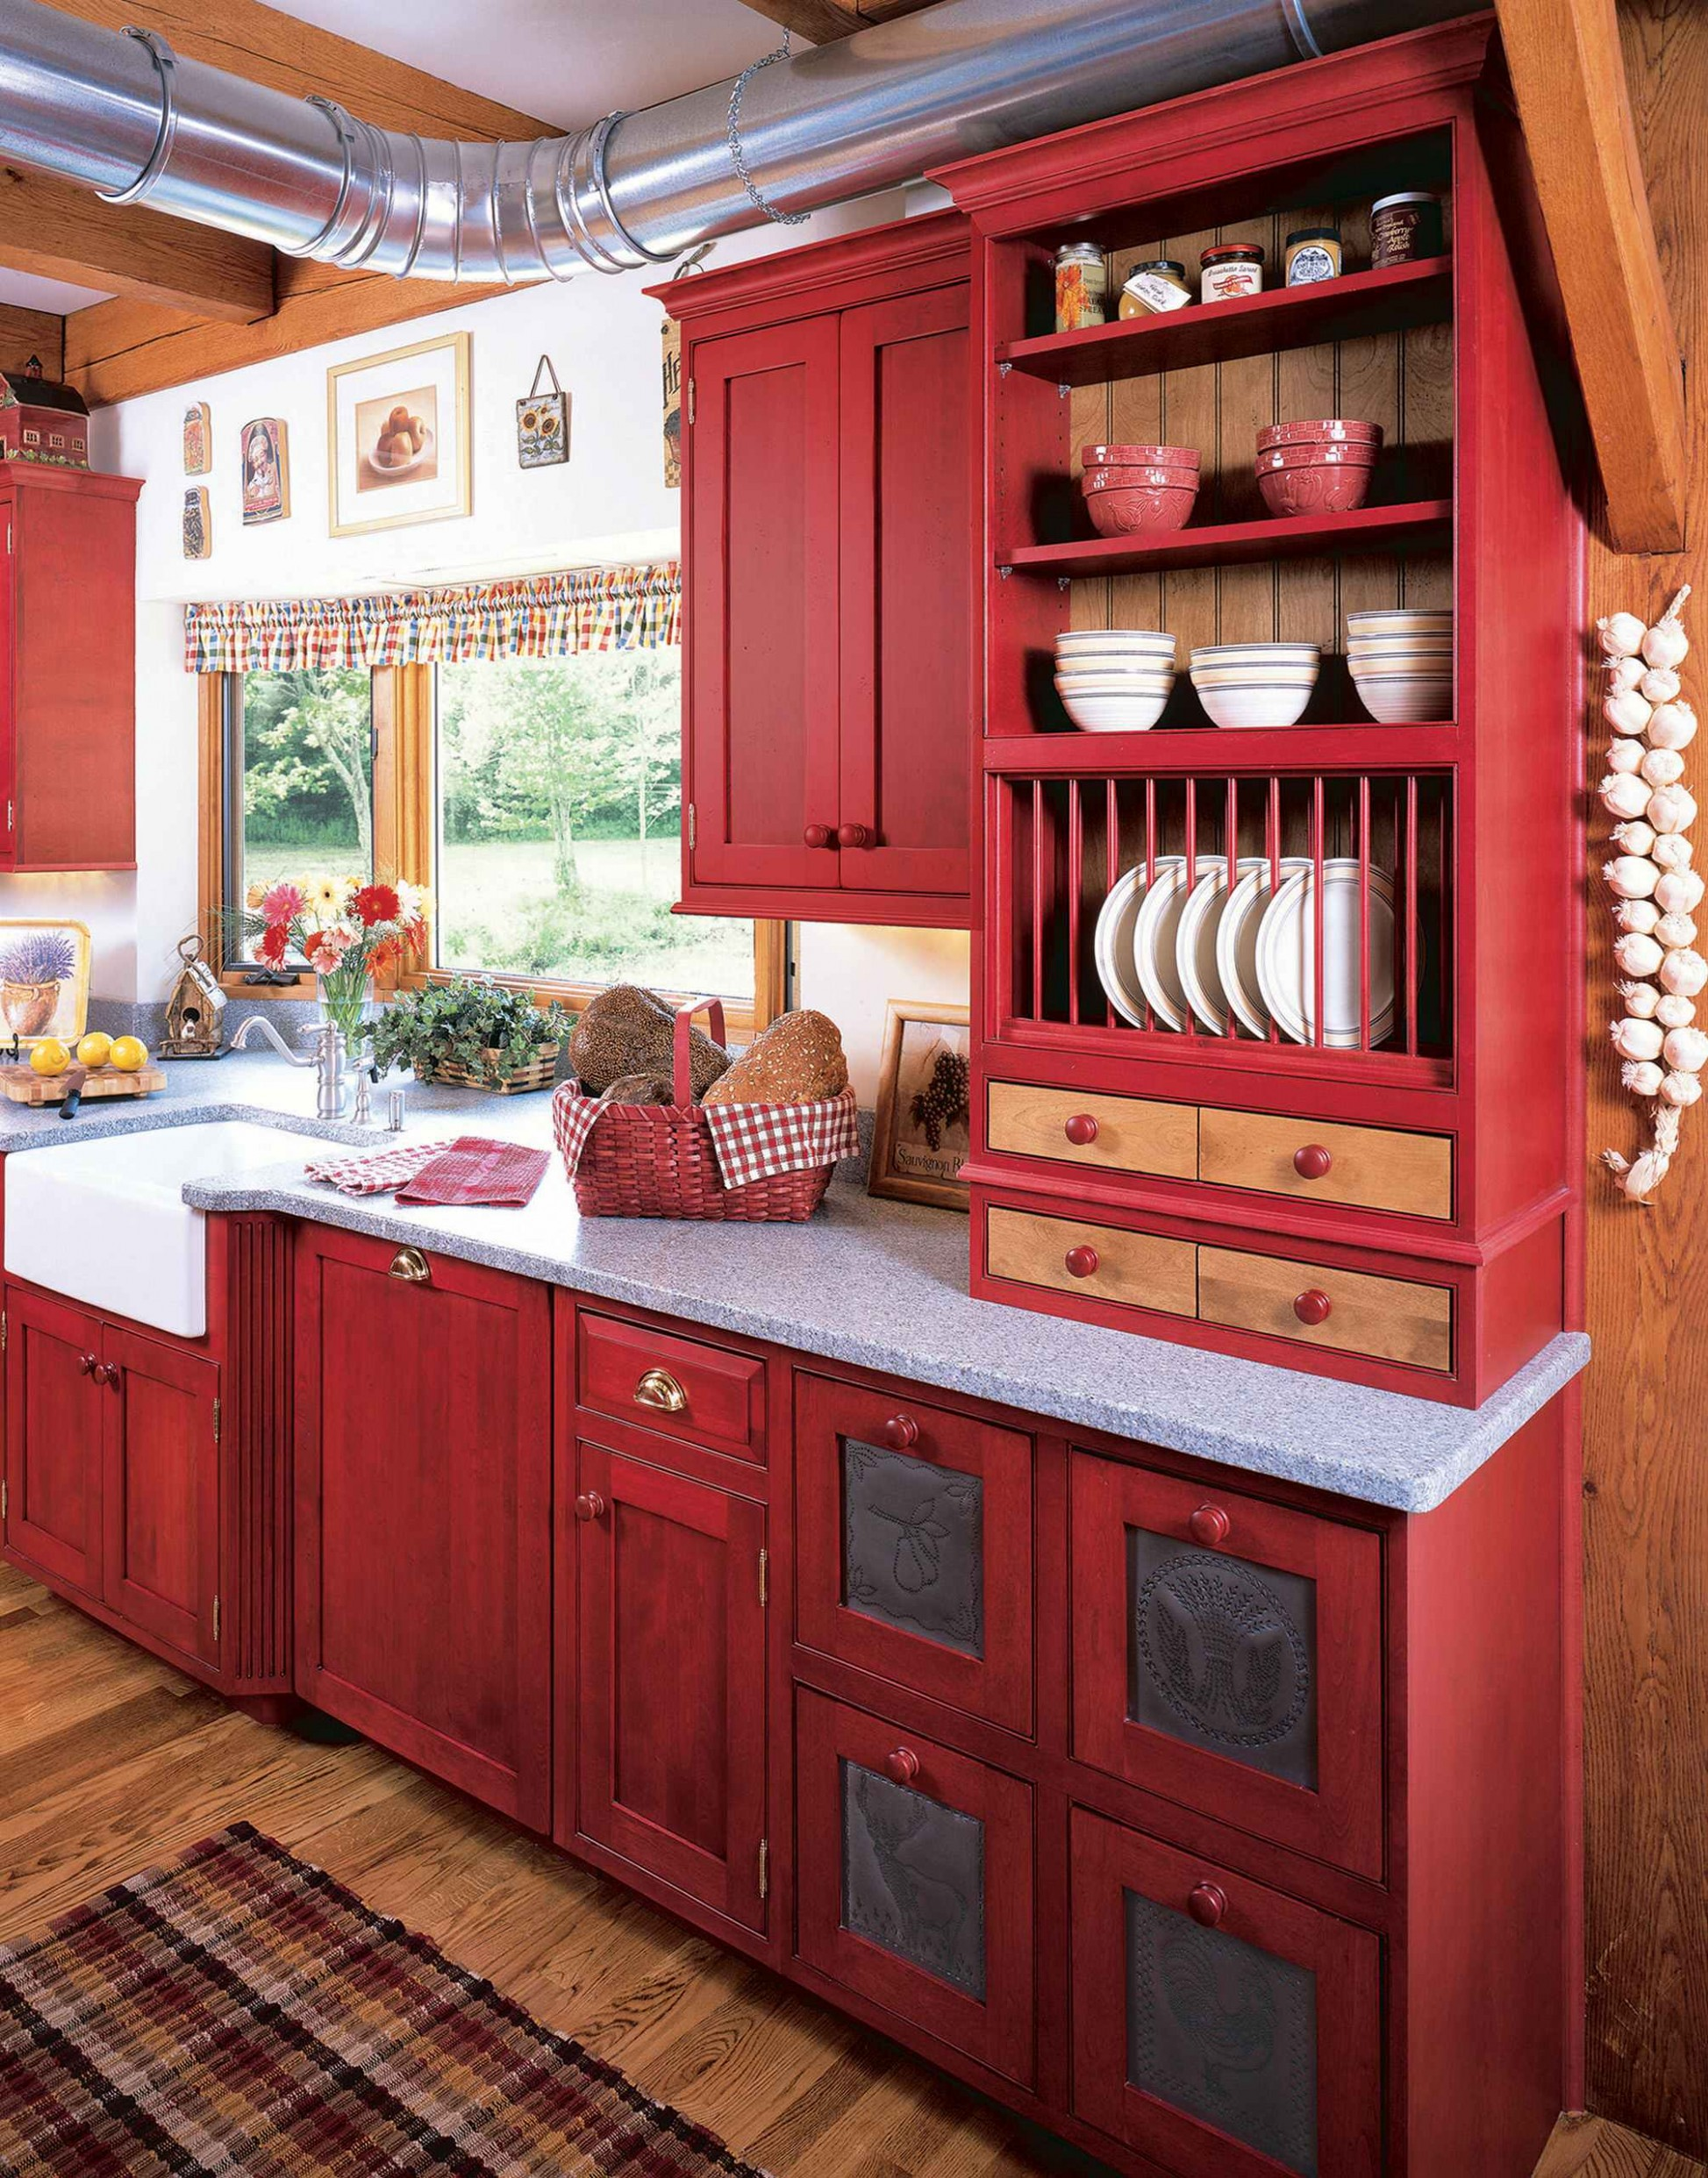 10 Beautiful Kitchen With Red Cabinets Pictures & Ideas - November  - Red Bank Kitchen Cabinets